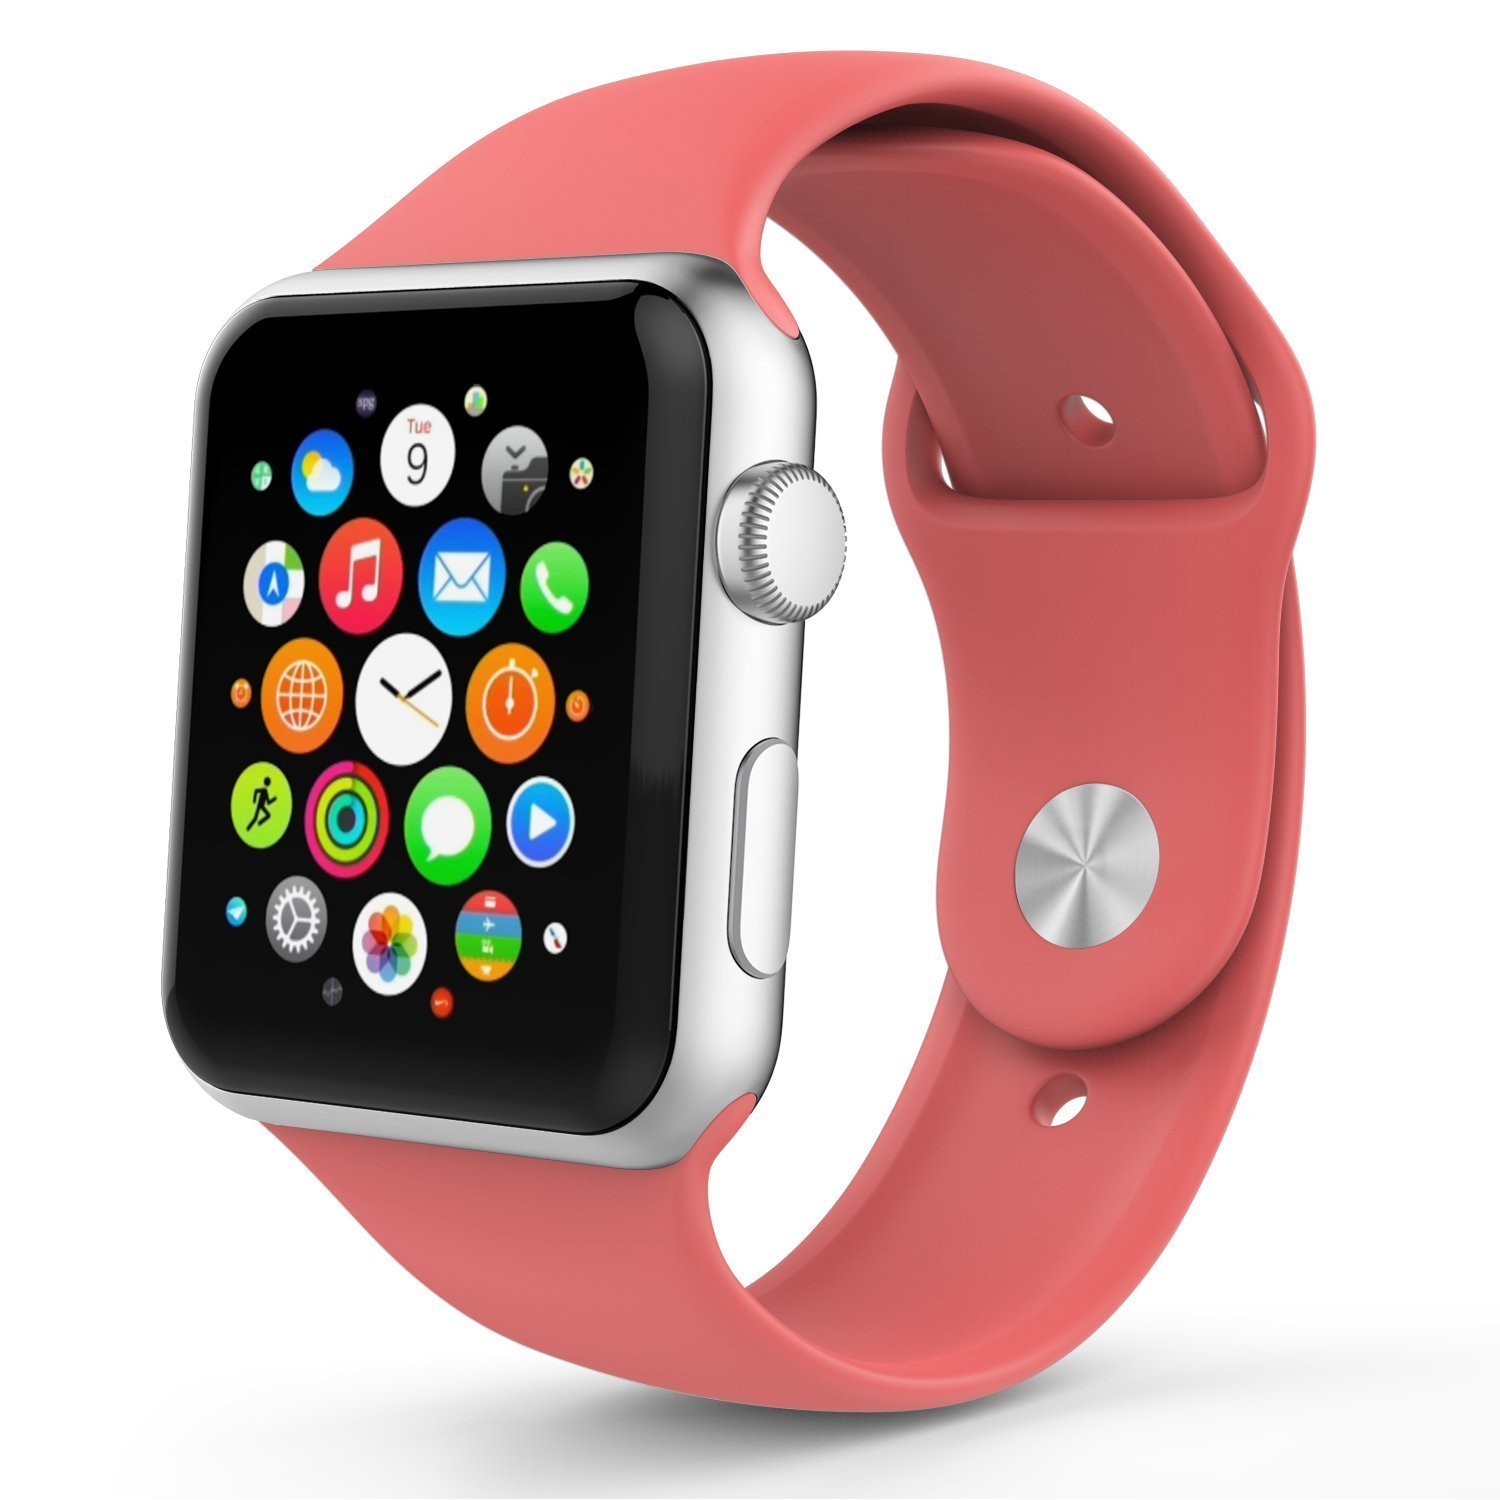 Apple Watch Band, izone 2016 Soft Silicone Replacement Sport Band for 38mm/42mm Apple Watch Models (Coral 38mm)